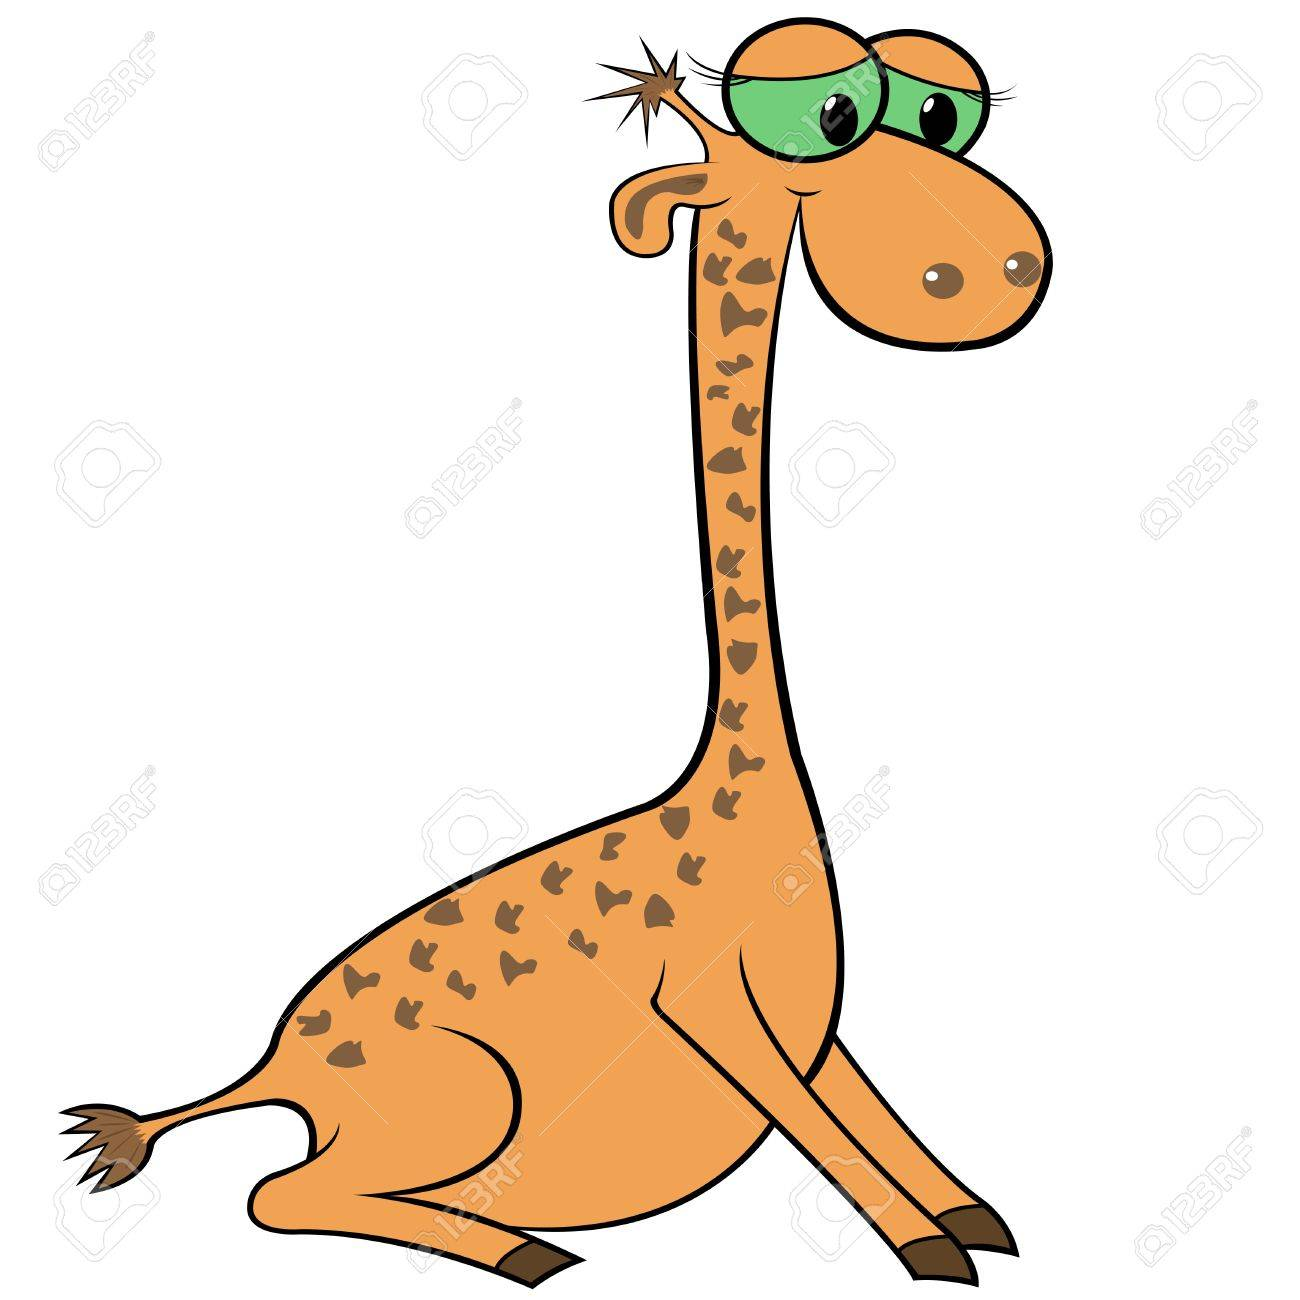 giraffe isolated on white background hand drawing cartoon